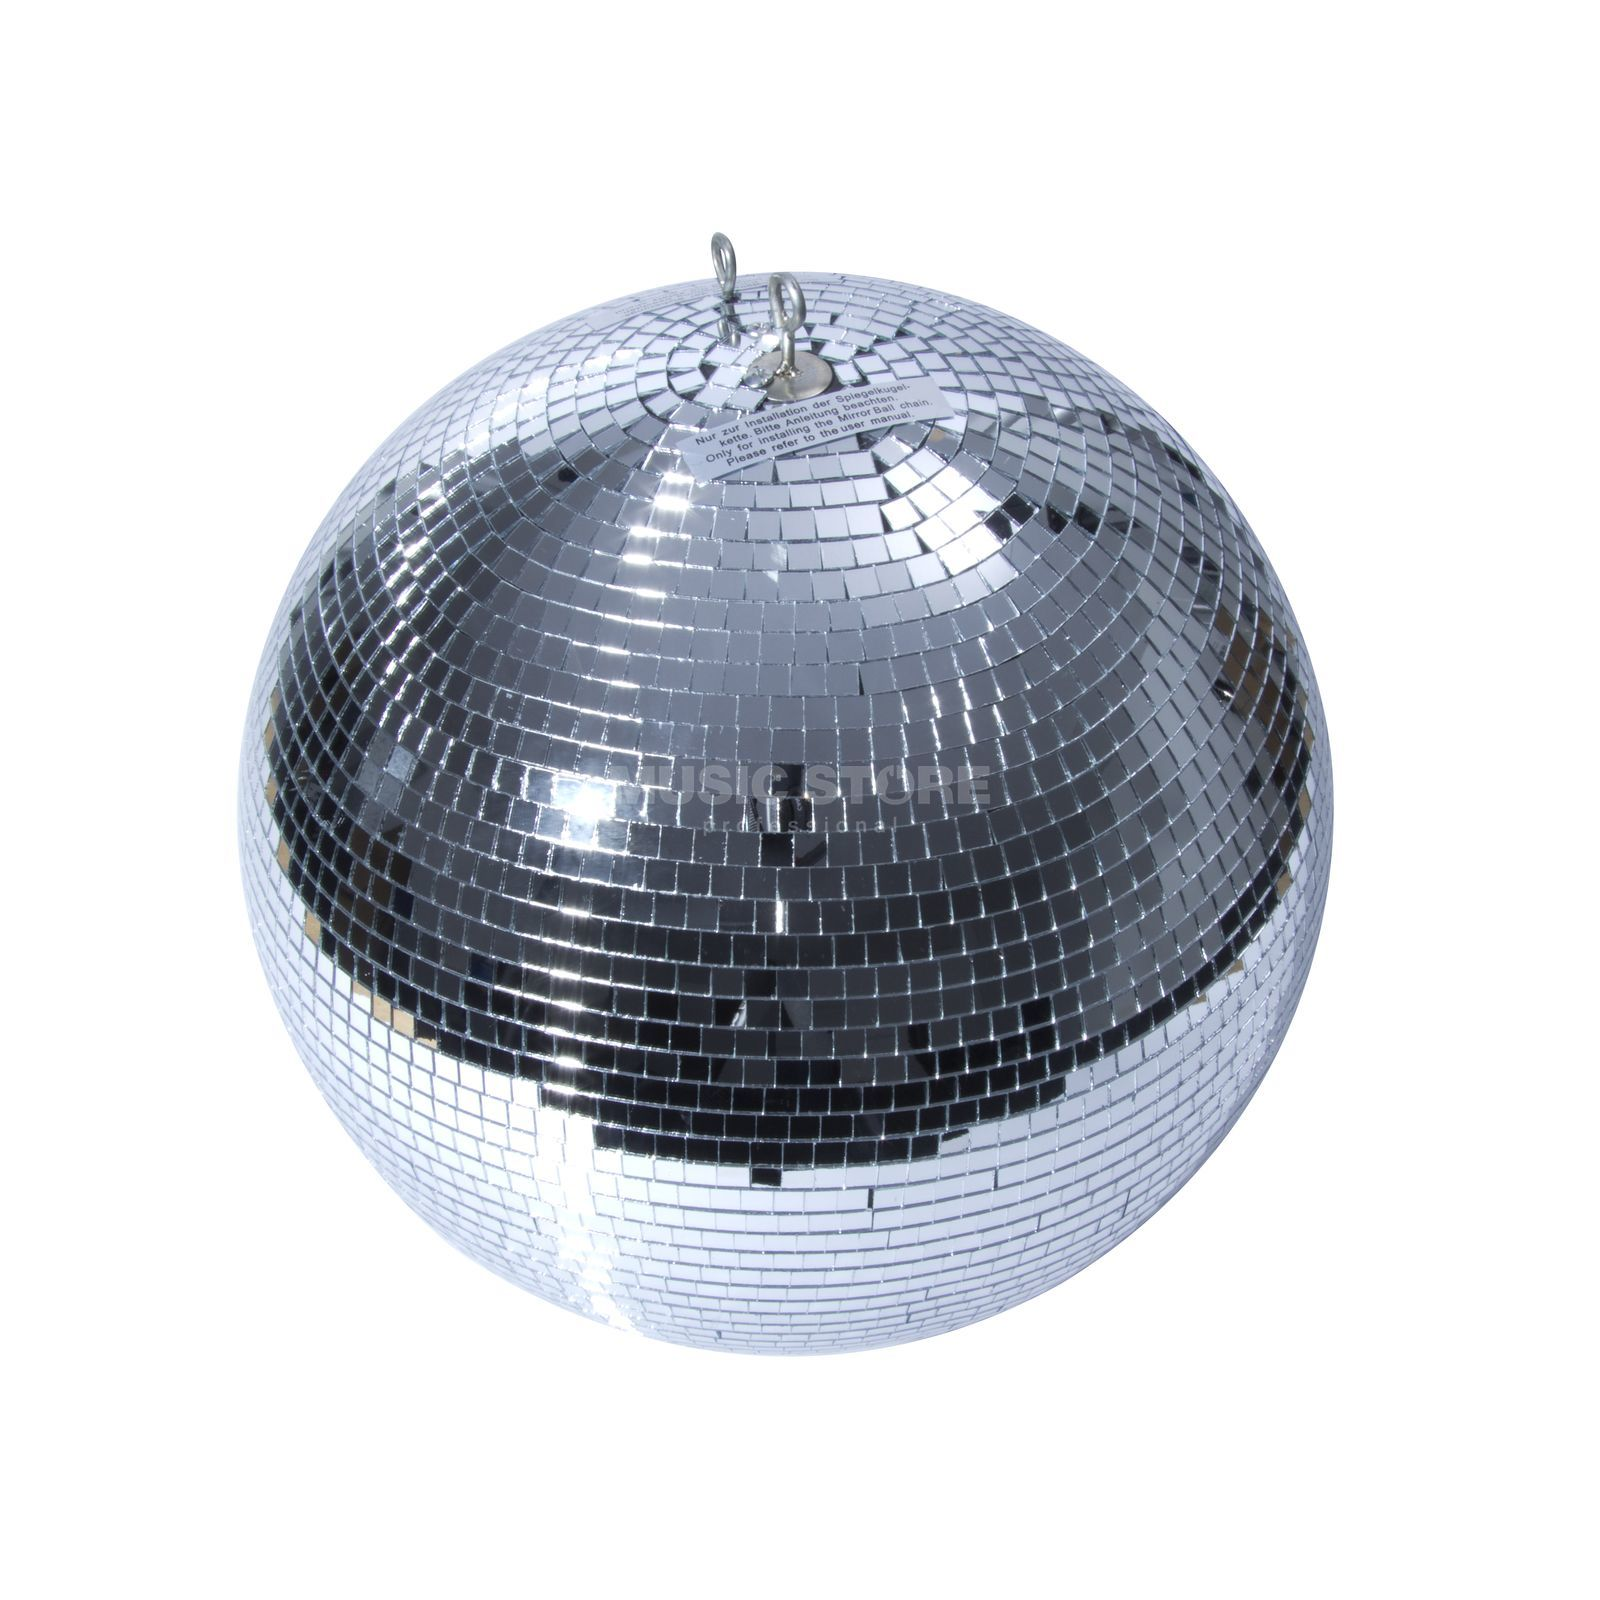 lightmaXX Mirror Ball 10 cm  Product Image